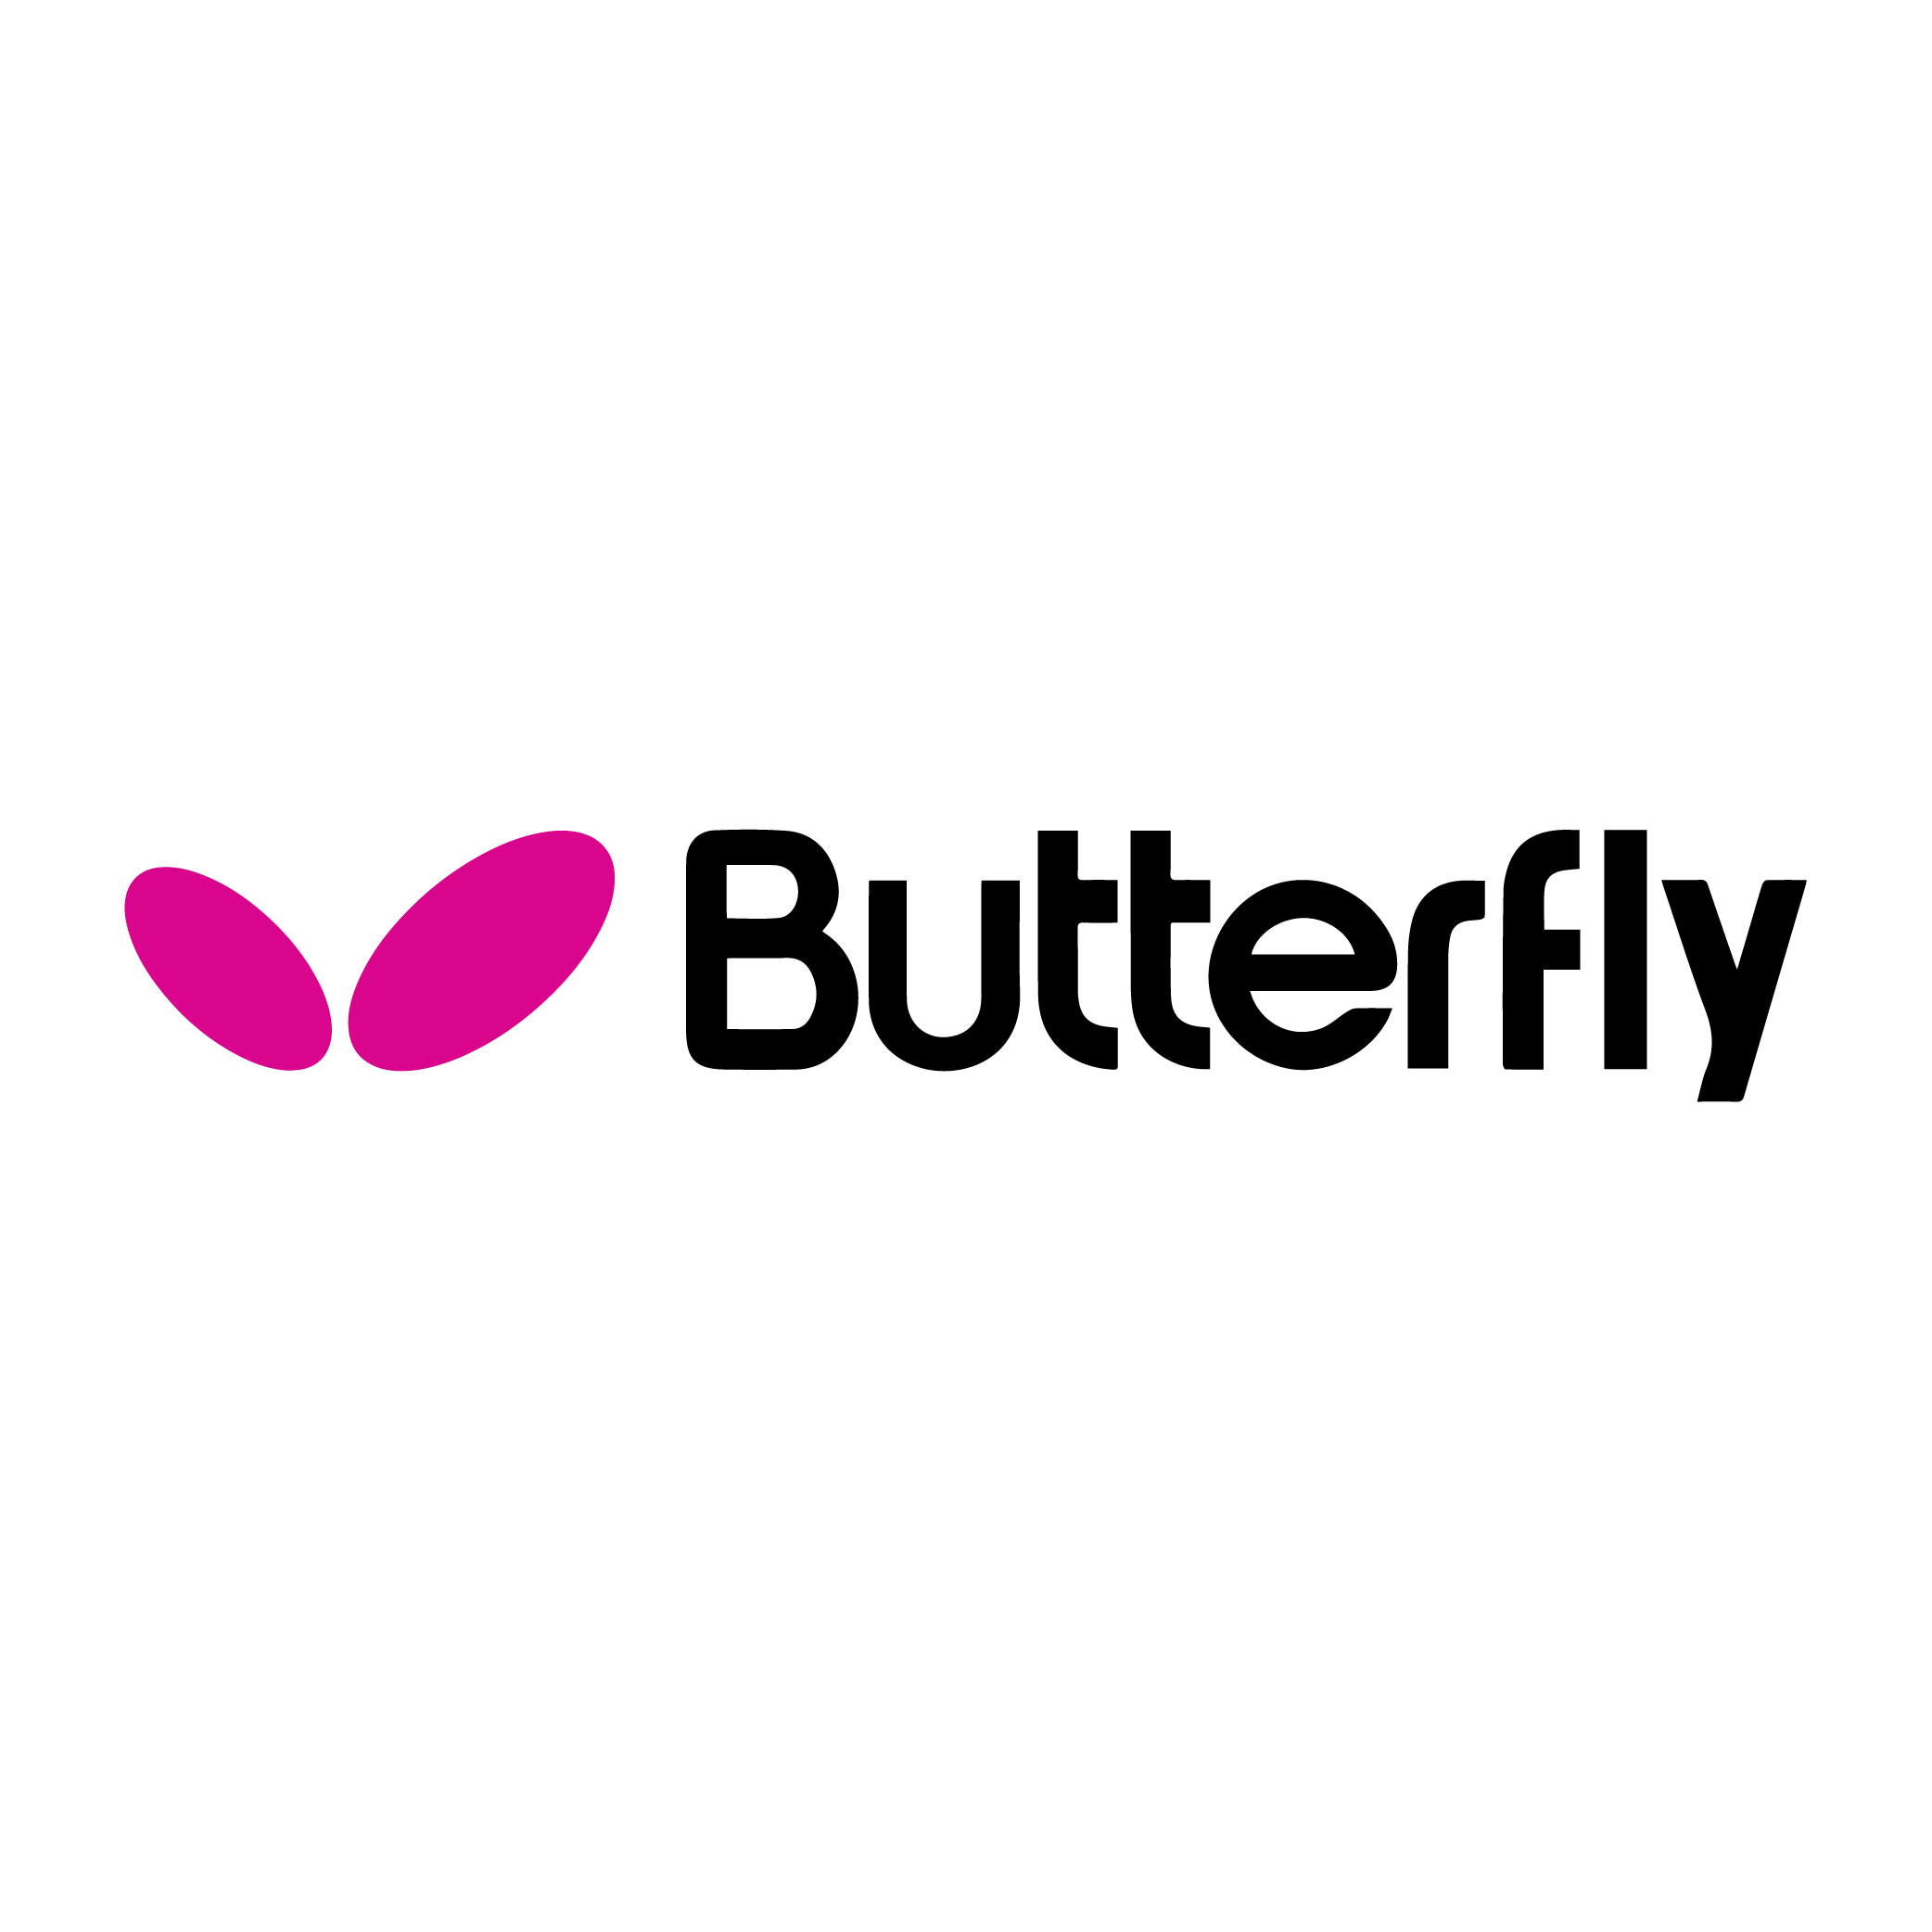 Butterfly-01.png